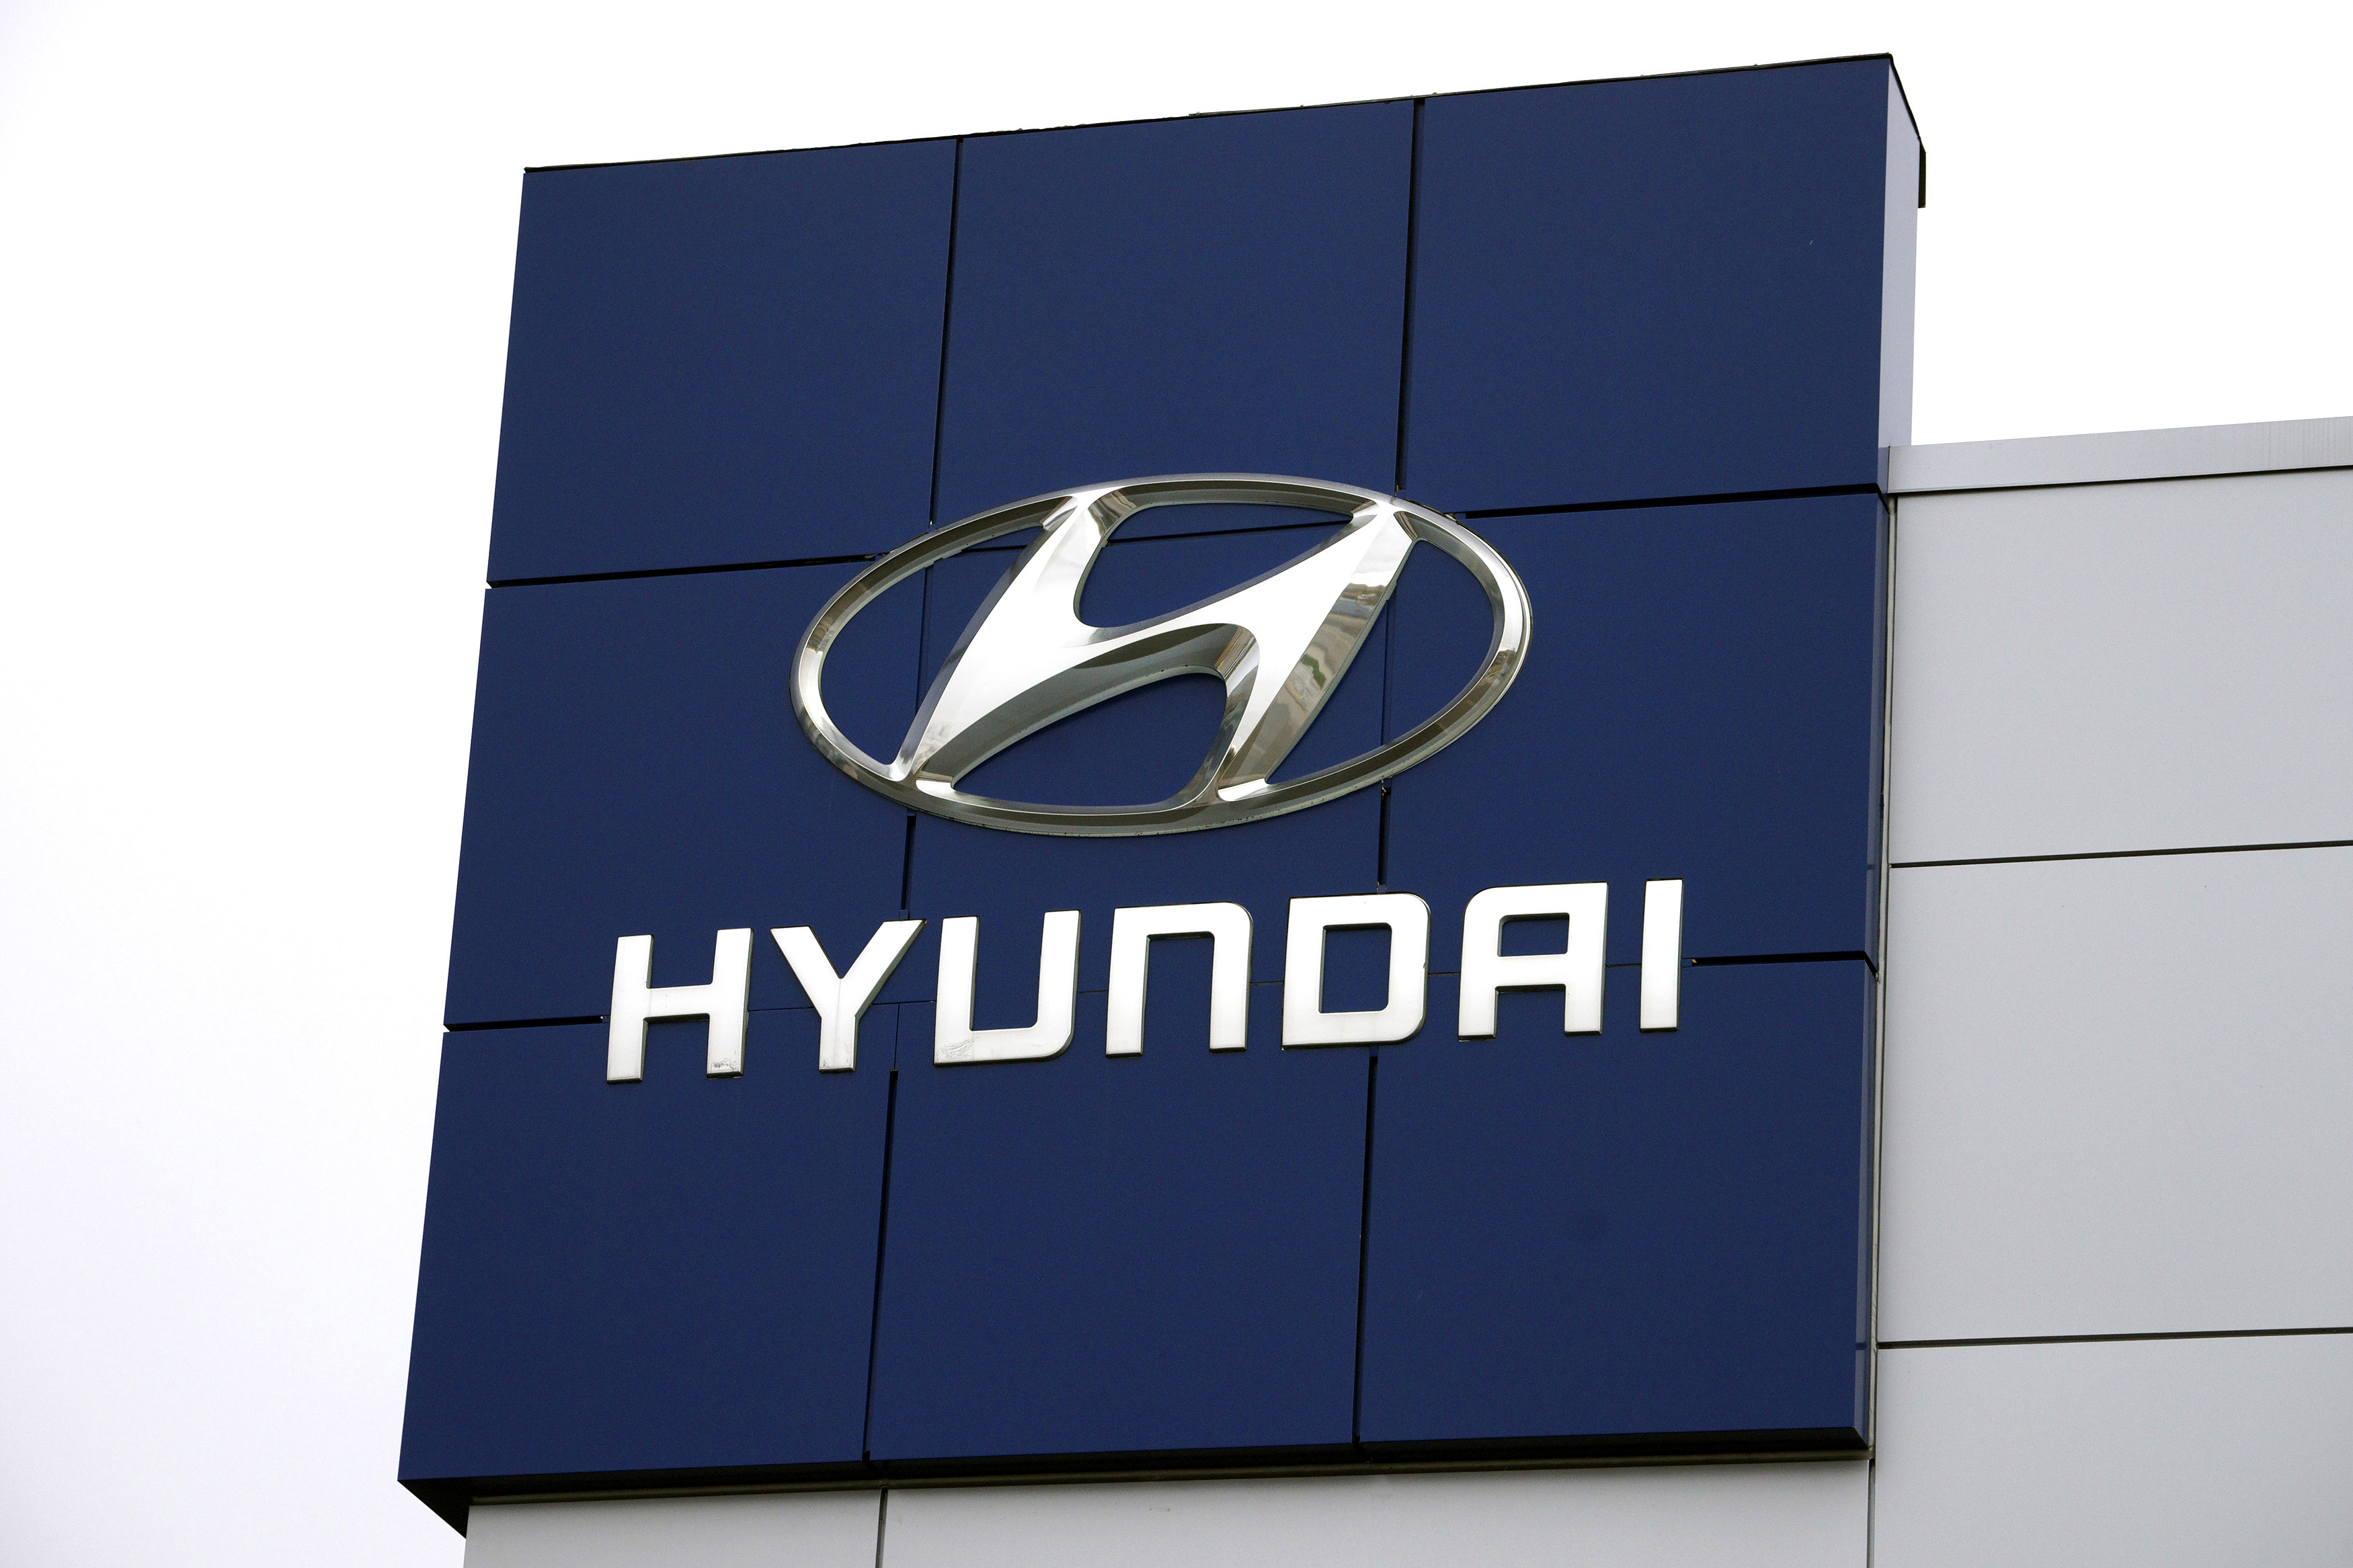 The Hyundai logo is seen outside a Hyundai car dealer in Golden, Colorado, November 3, 2014.